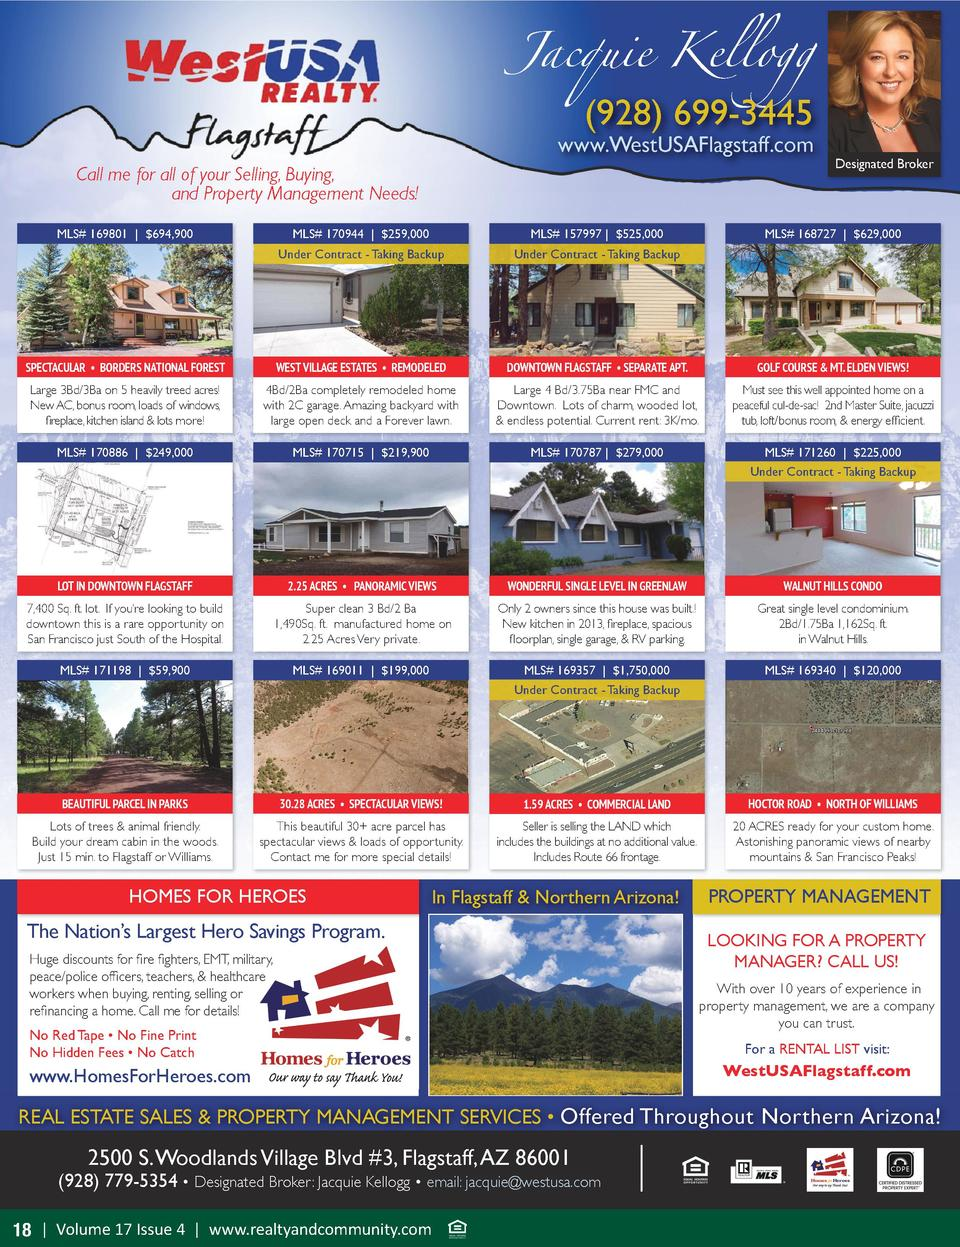 Jacquie Kellogg   928  699-3445  www.WestUSAFlagstaff.com Call me for all of your Selling, Buying, and Property Management...